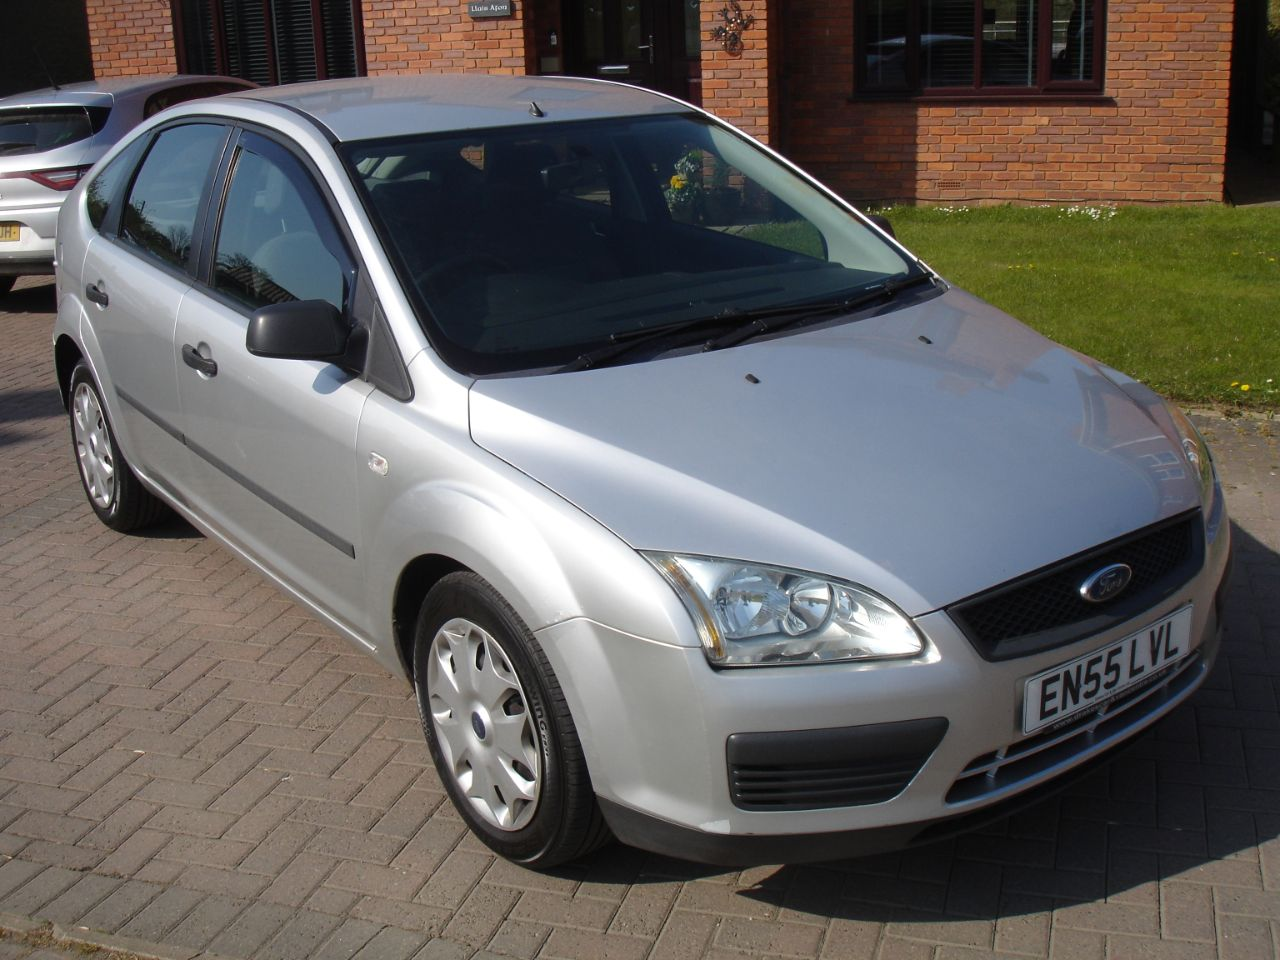 Ford Focus 1.8 TDCi LX 5dr [Euro 4] Hatchback Diesel Silver at Level Pitch Selby